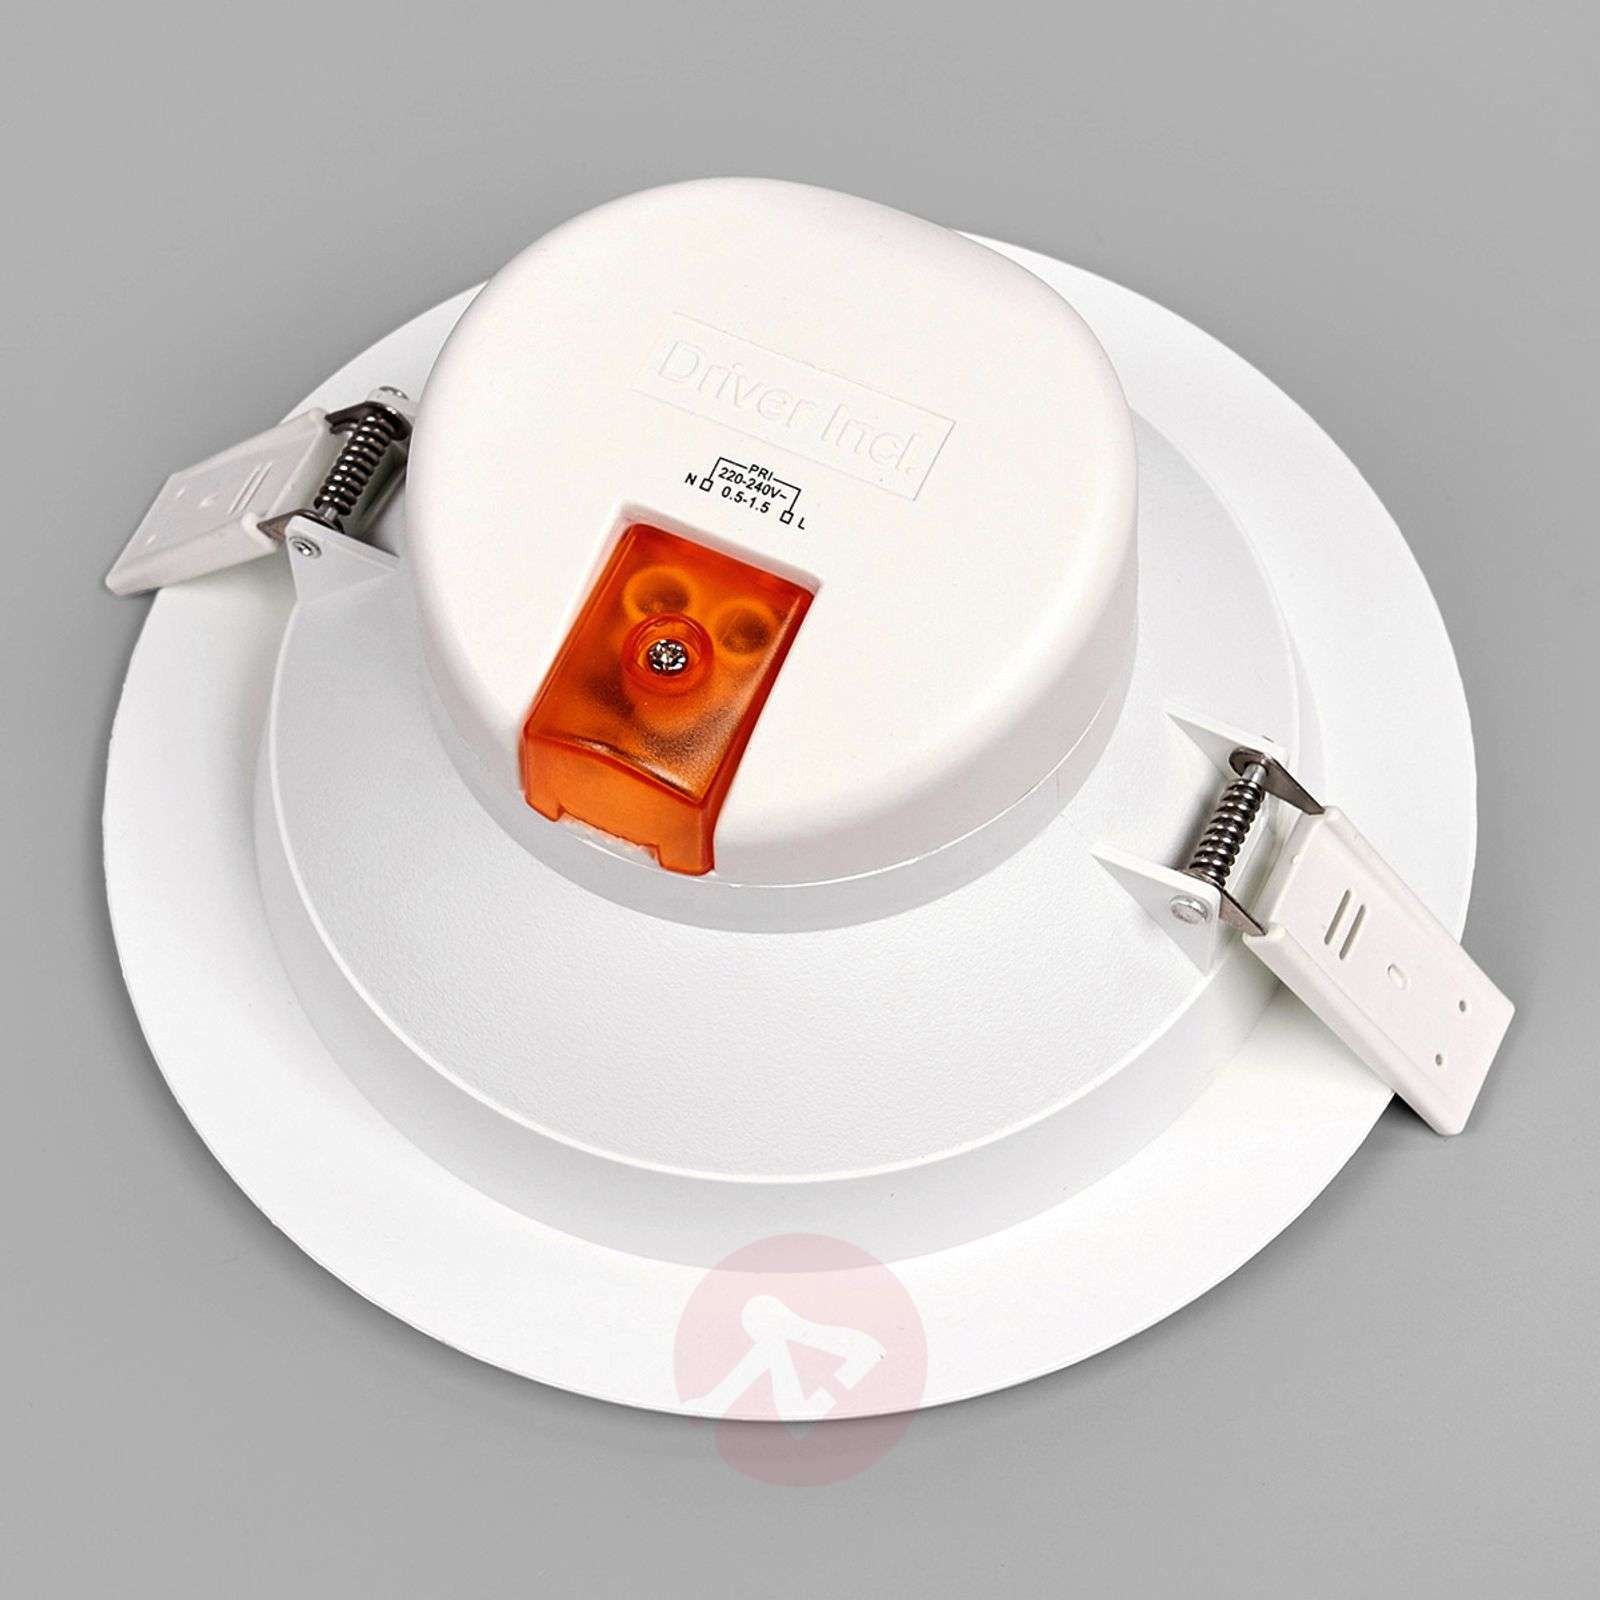 Downlight LED lumineux Arian, 17,4 cm, 15 W-9978011-03